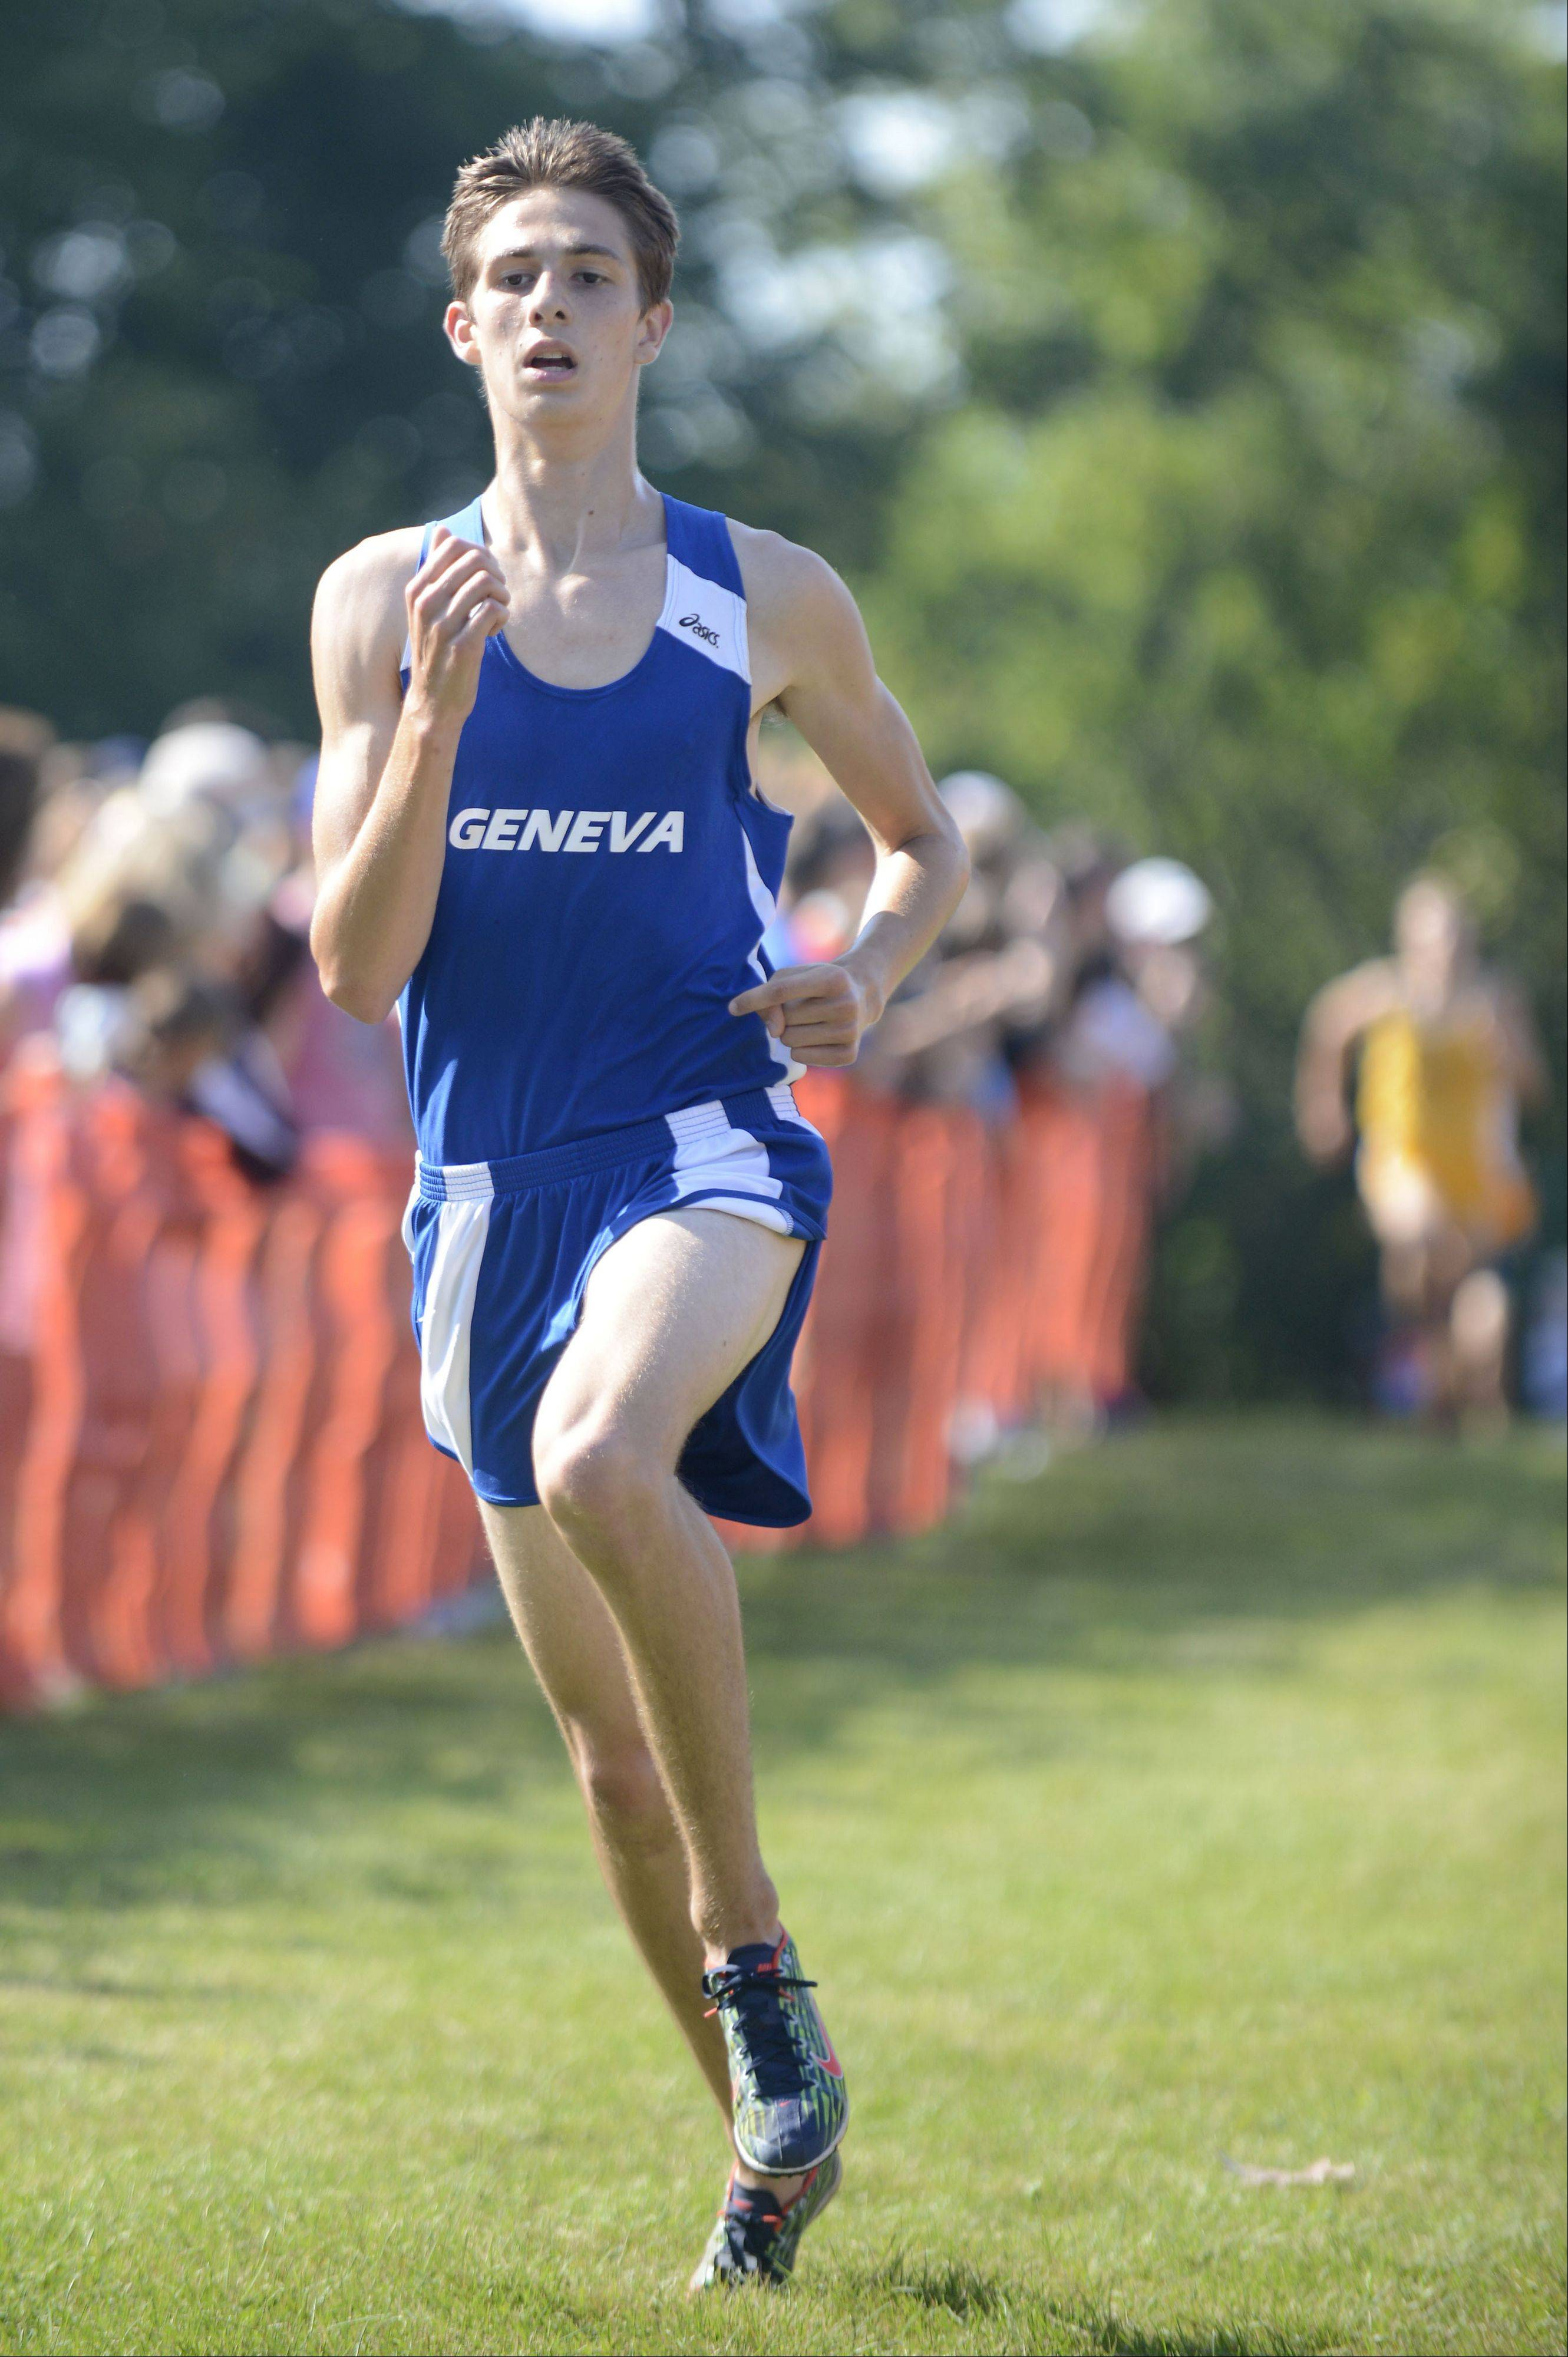 Geneva's Blaine Bartel nears the finish line in the meet at Leroy Oakes Forest Preserve in St. Charles on Saturday, September 7.